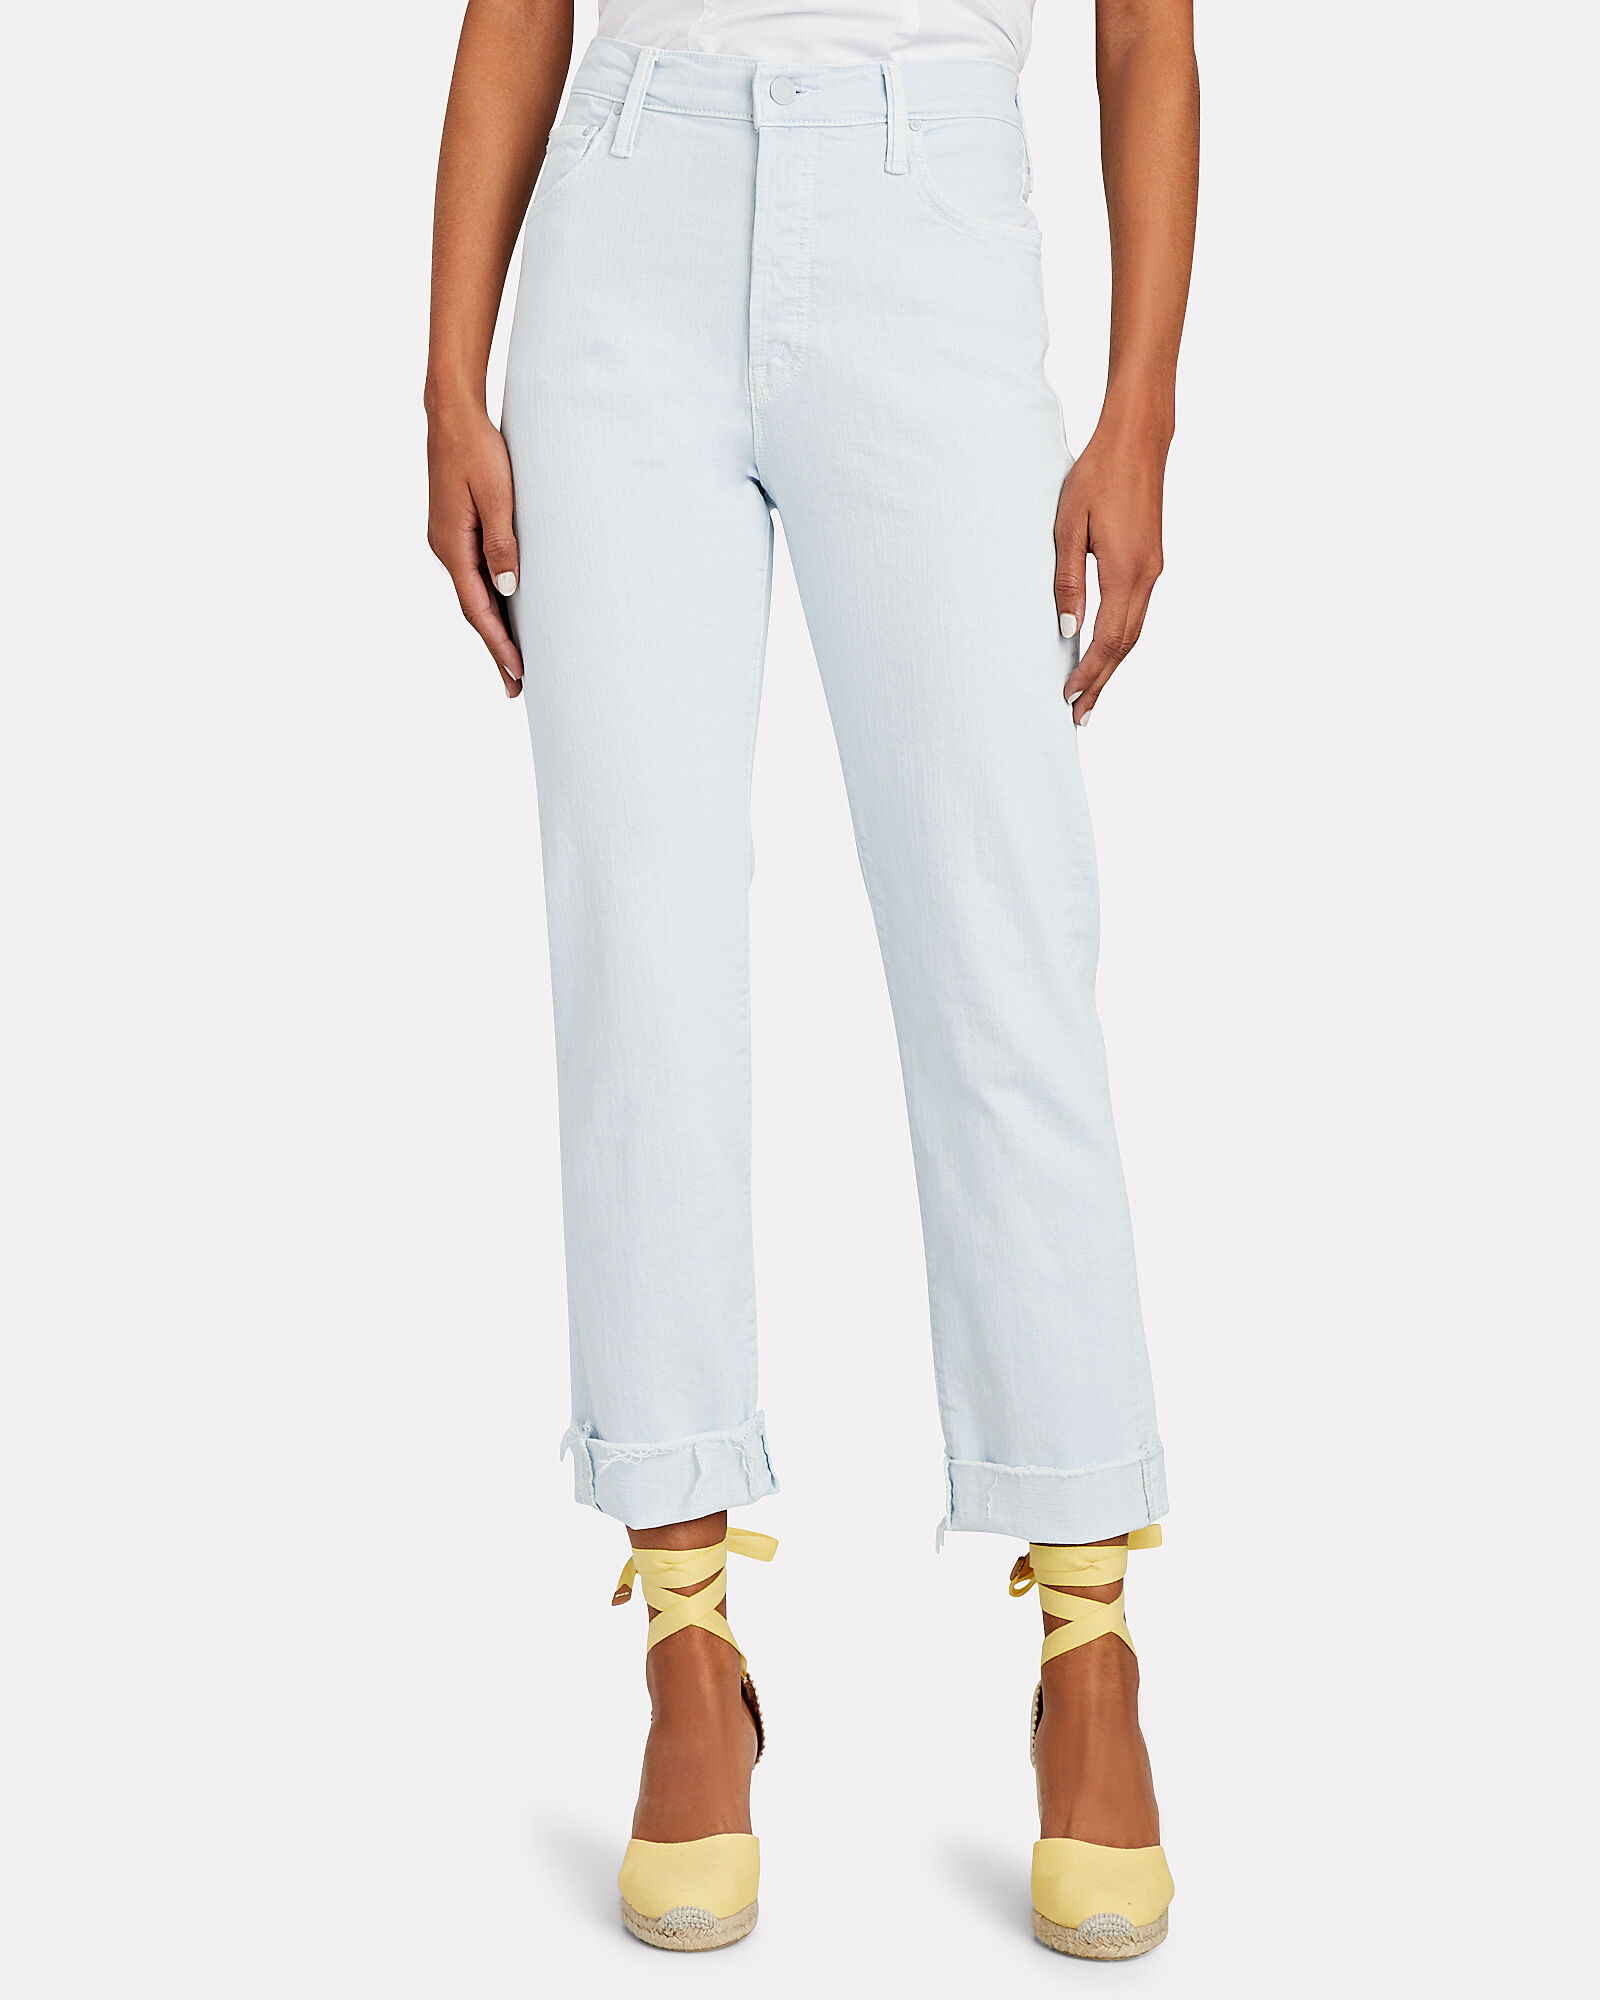 The Scrapper Cuff Ankle Fray Jeans, BLUE-LT, hi-res